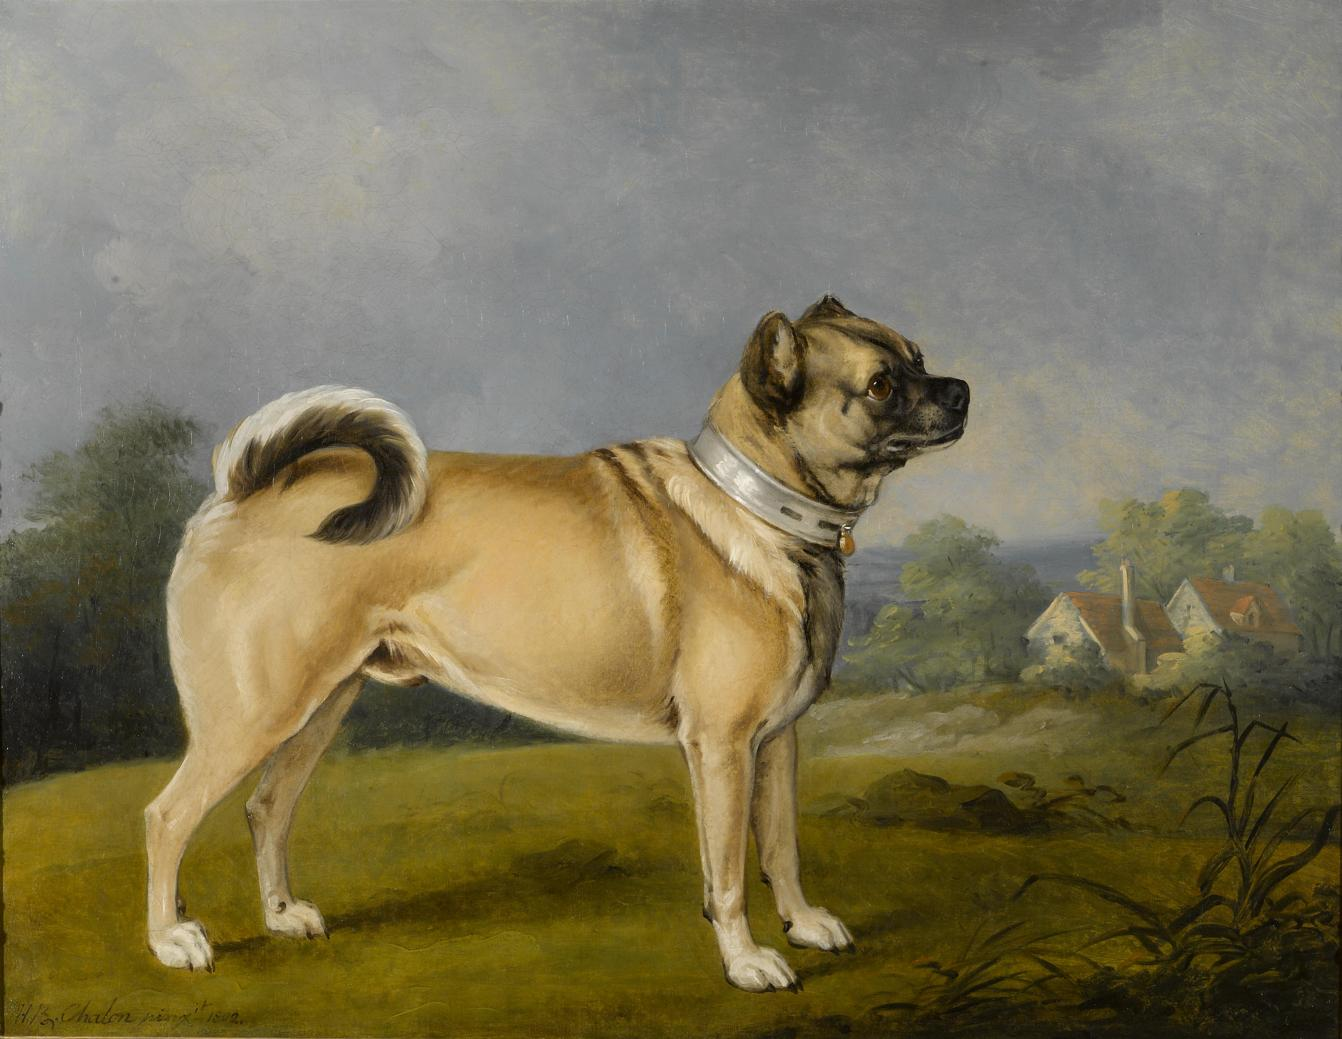 Pugs were believed to have healing abilities. A Favorite Pug by Henry Bernard Chalon, 1802. https://commons.wikimedia.org/wiki/File:Henry_Bernard_Chalon_-_A_favorite_pug_(1802).jpg